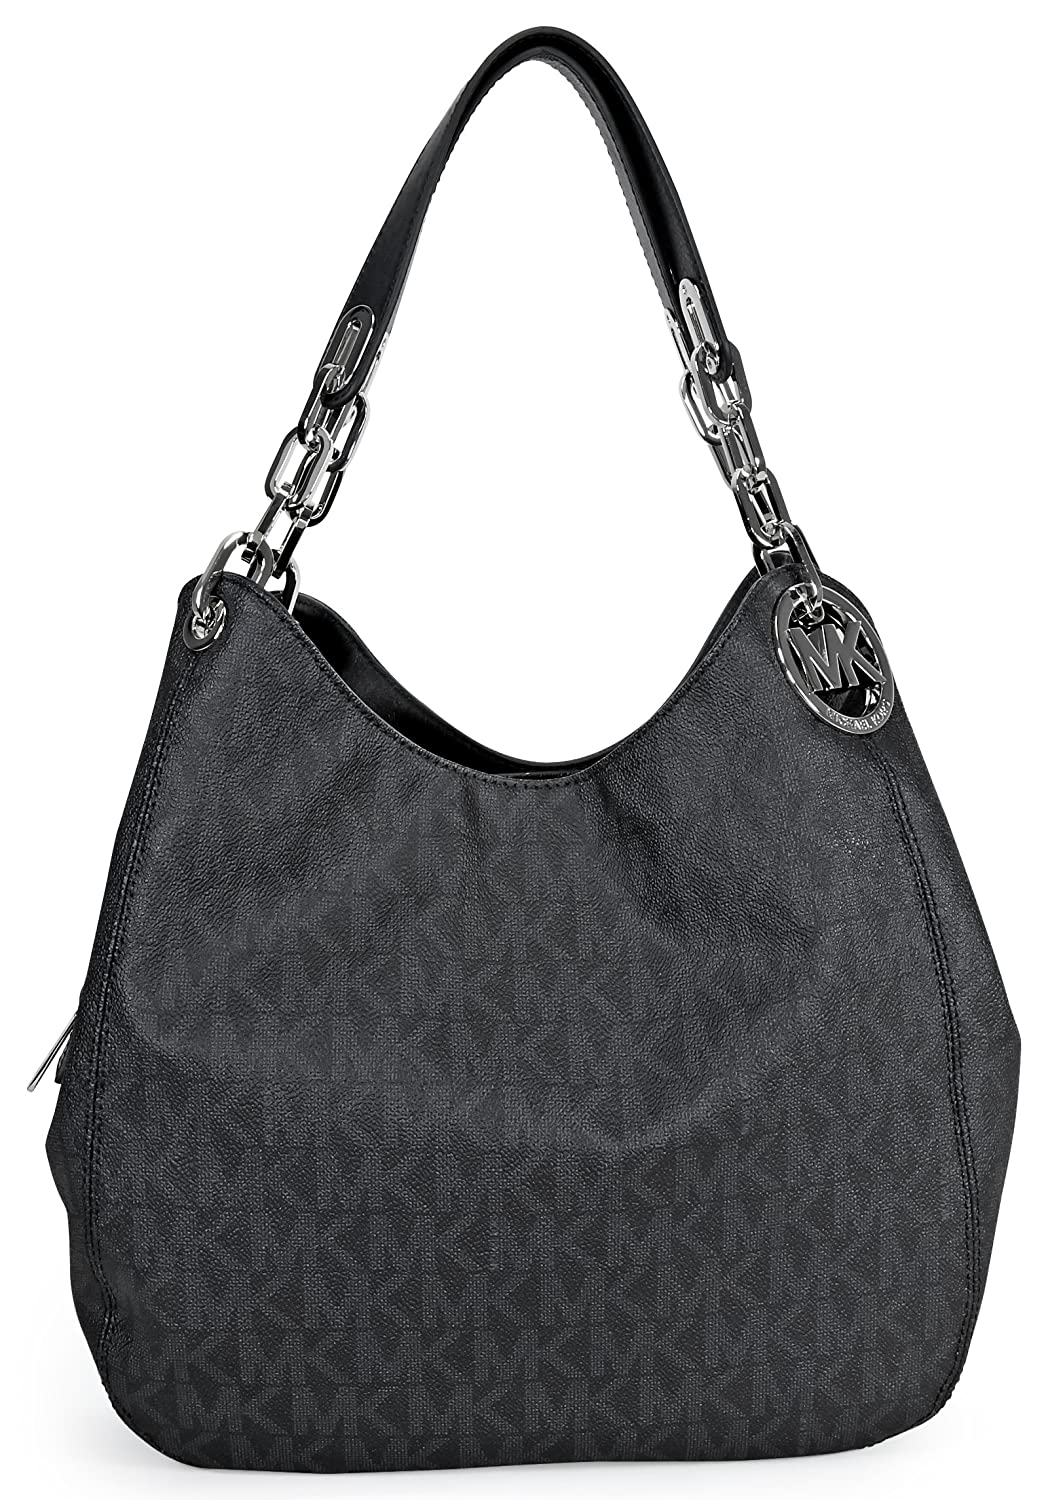 review michael kors outlet online christmas best price michael kors crossbody bags